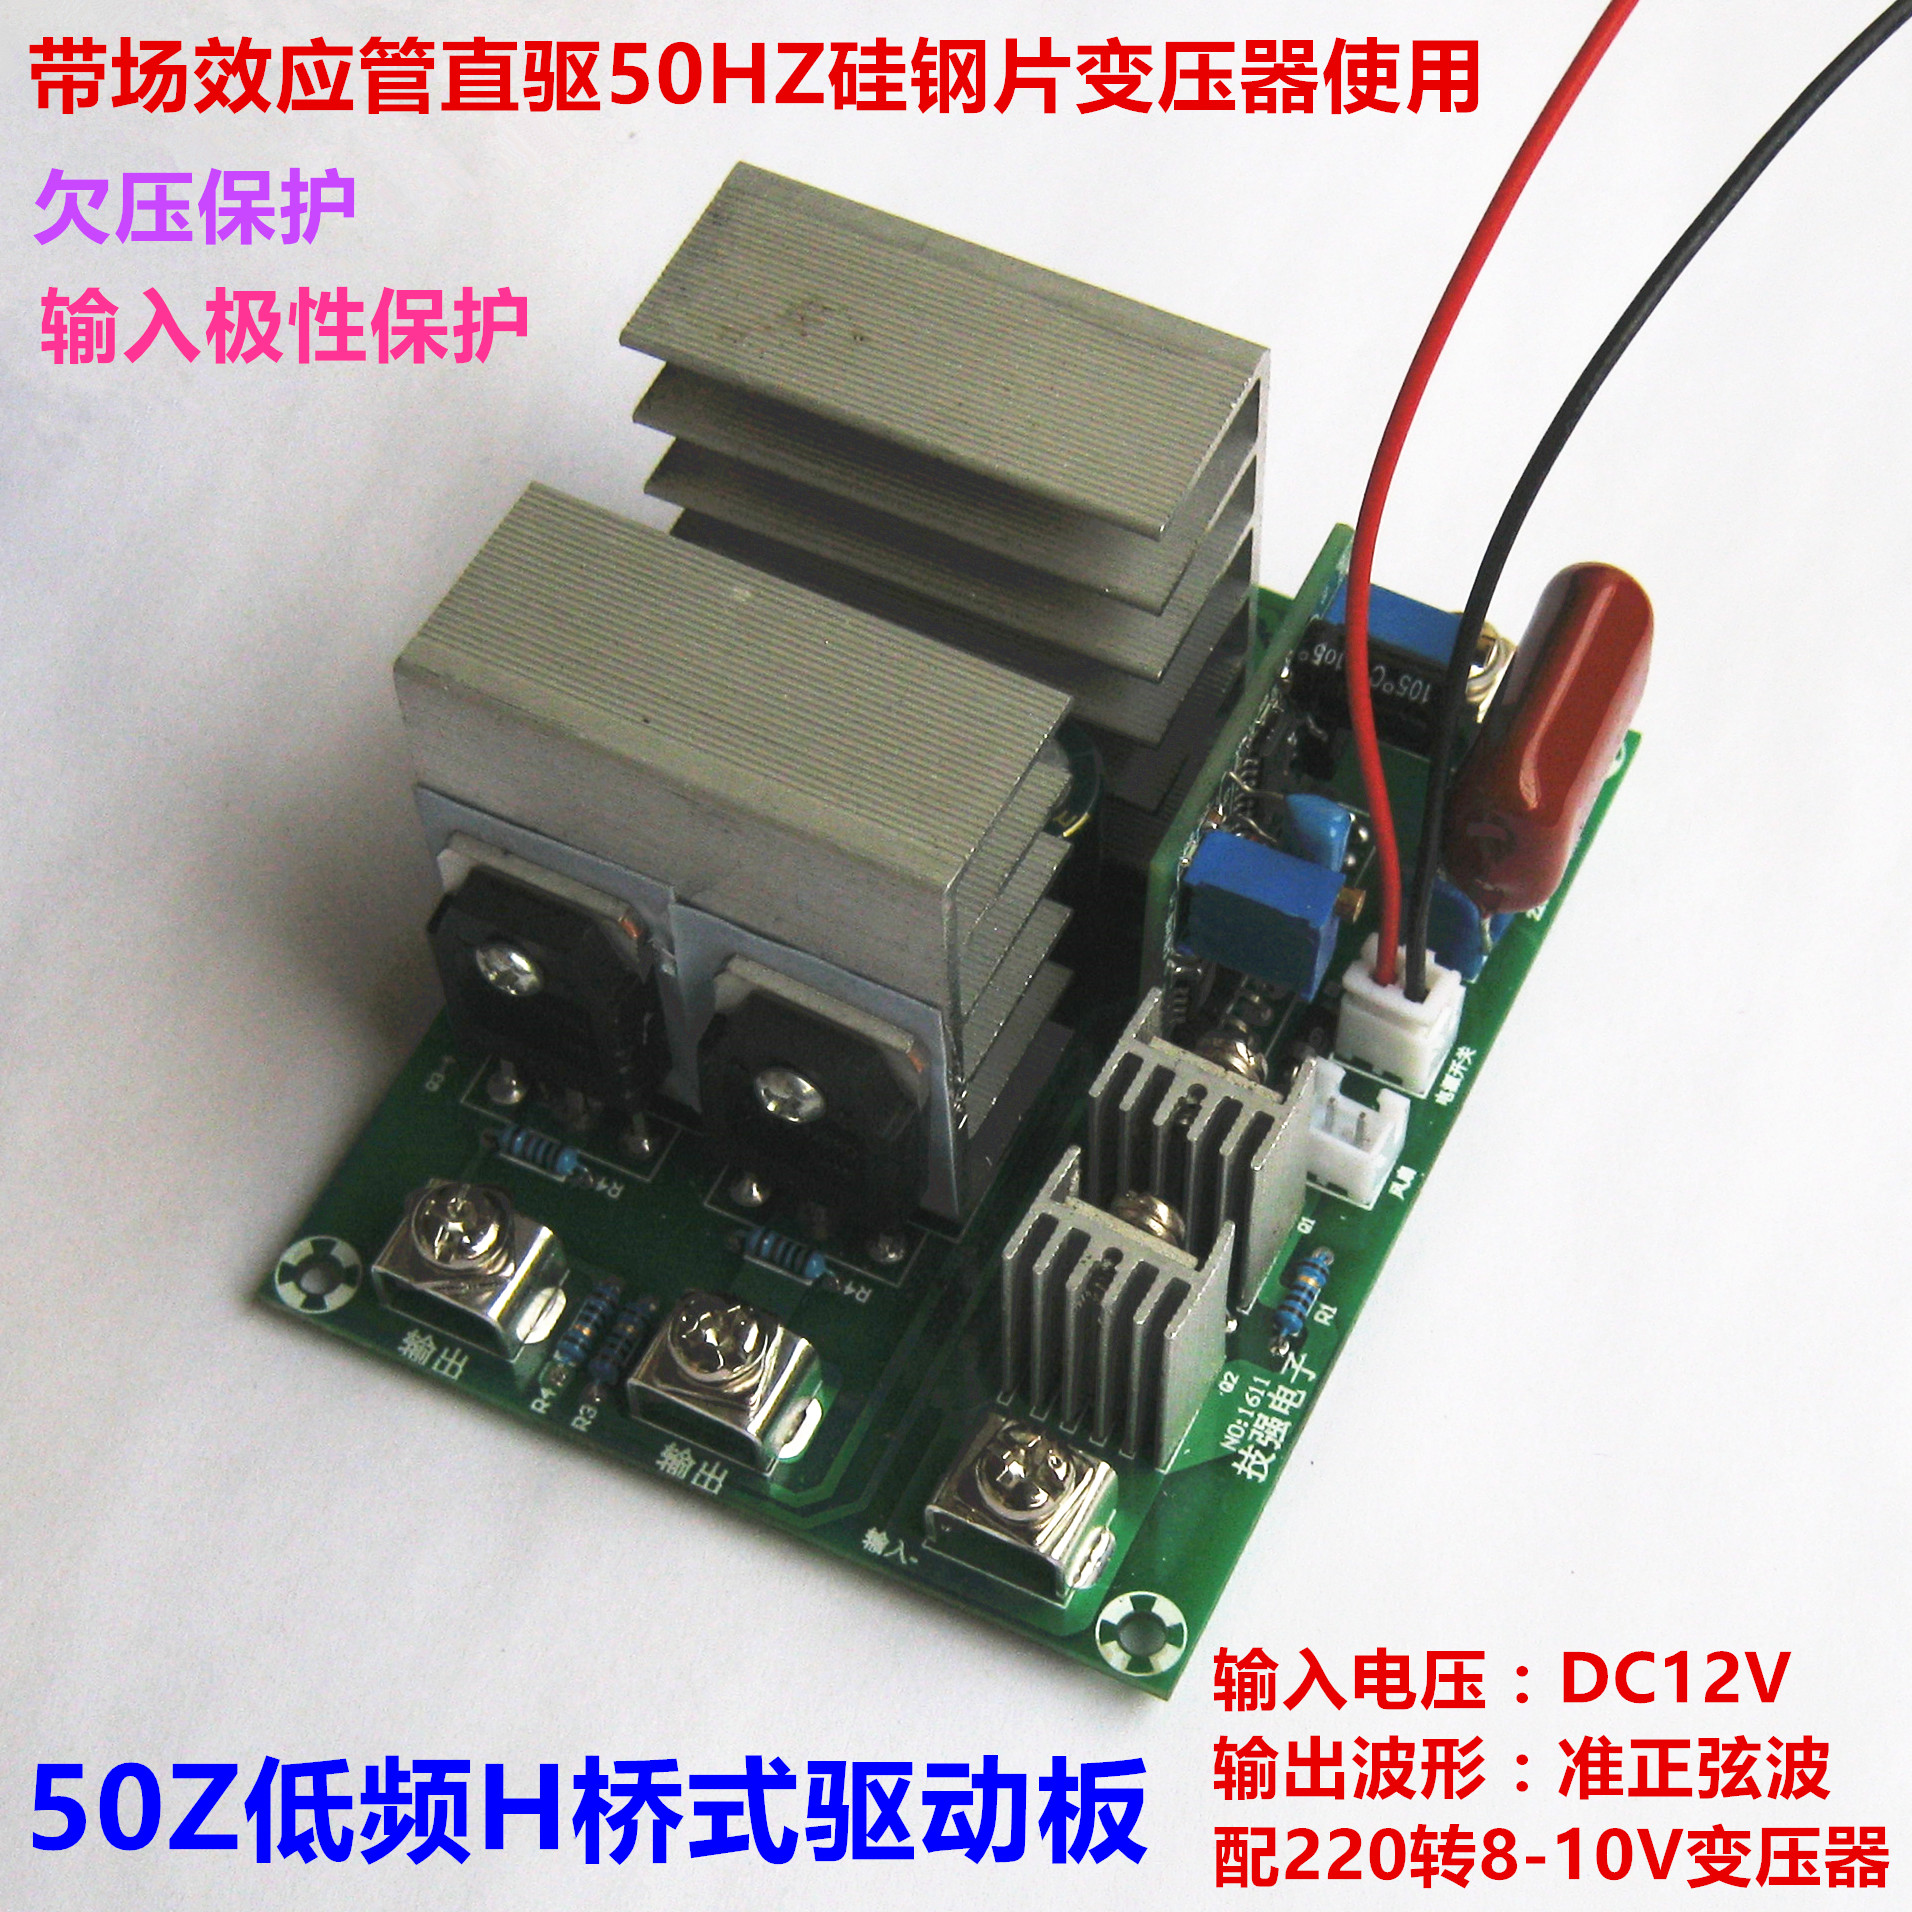 12V Boost 220V Bridge Type 50HZ Inverter Driver Board 500W with Voltage Regulation Quasi Sinusoidal Direct Transformer direct selling rw7 10 200a outdoor high voltage 10kv drop type fuse